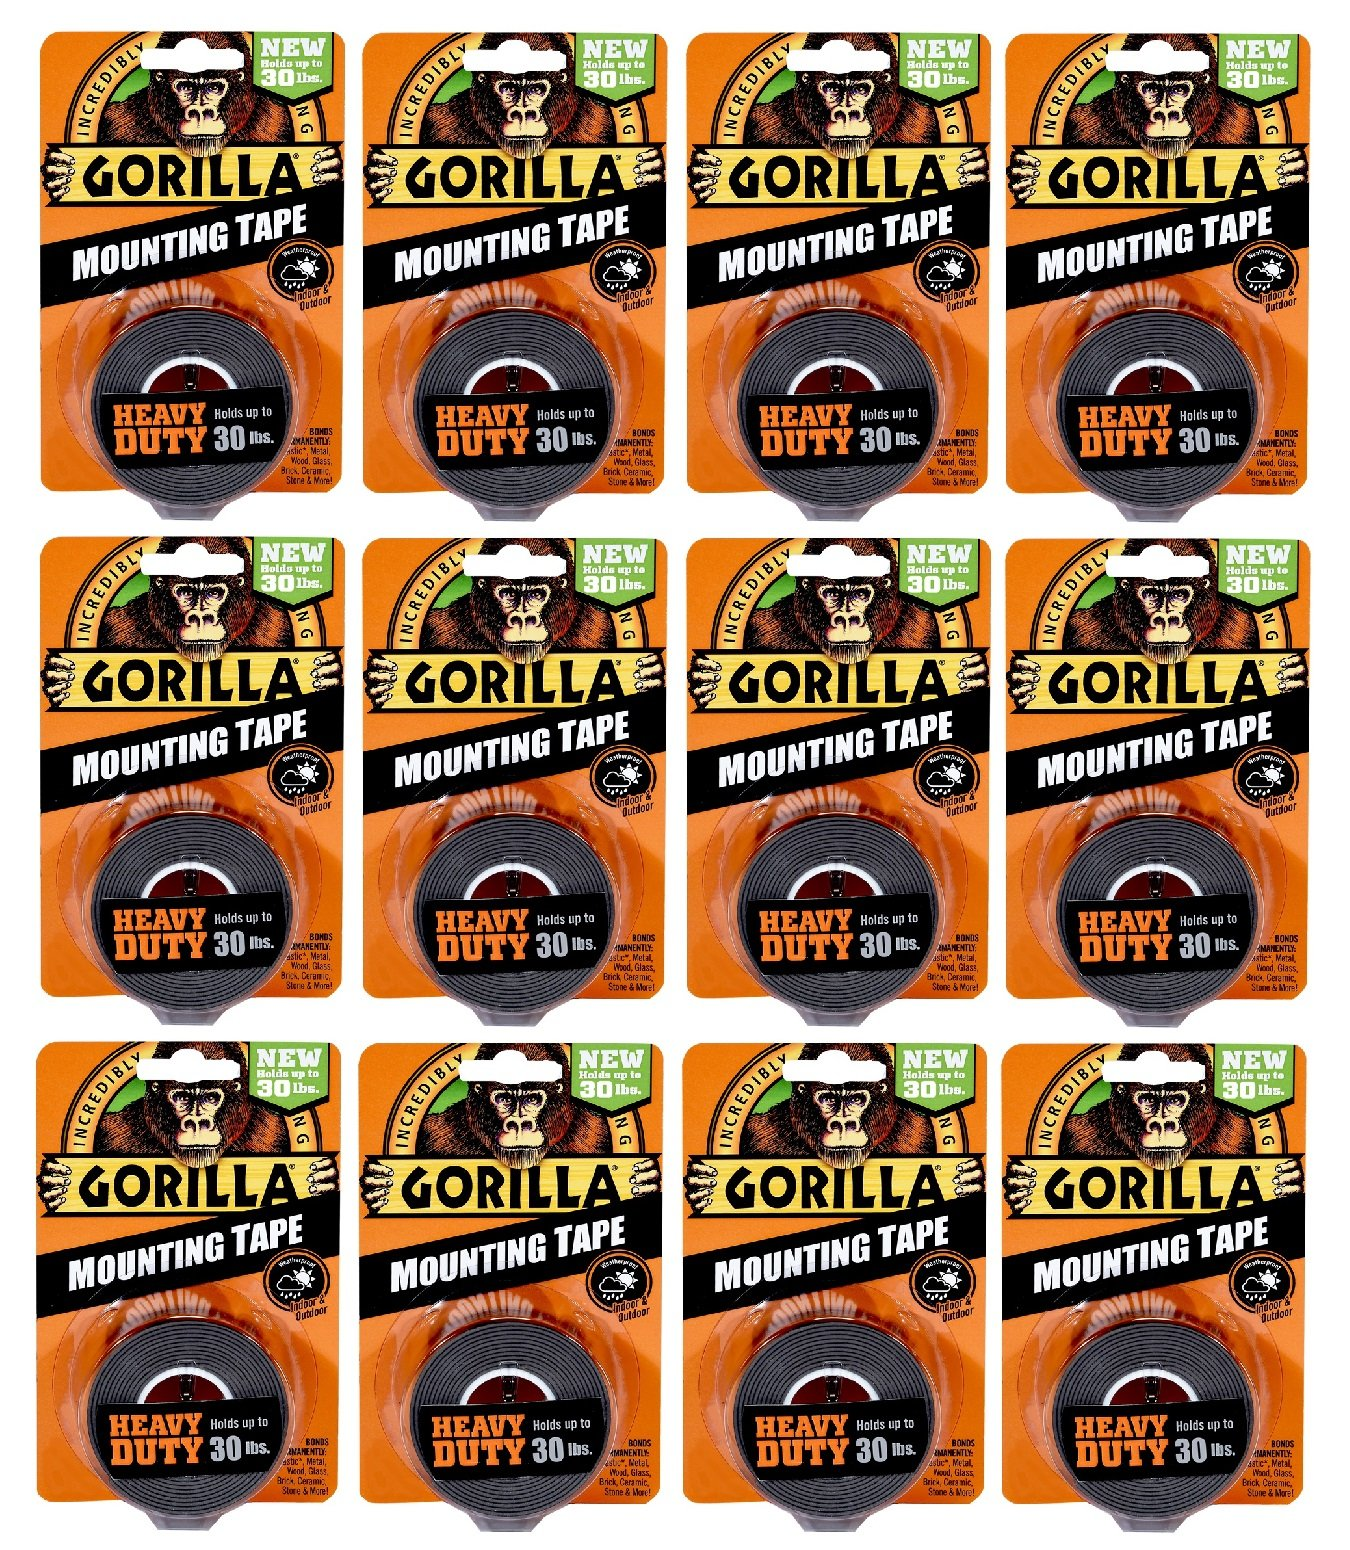 Gorilla Heavy Duty Double Sided Mounting Tape, 1 Inch x 60 Inches, Black(Pack of 12)